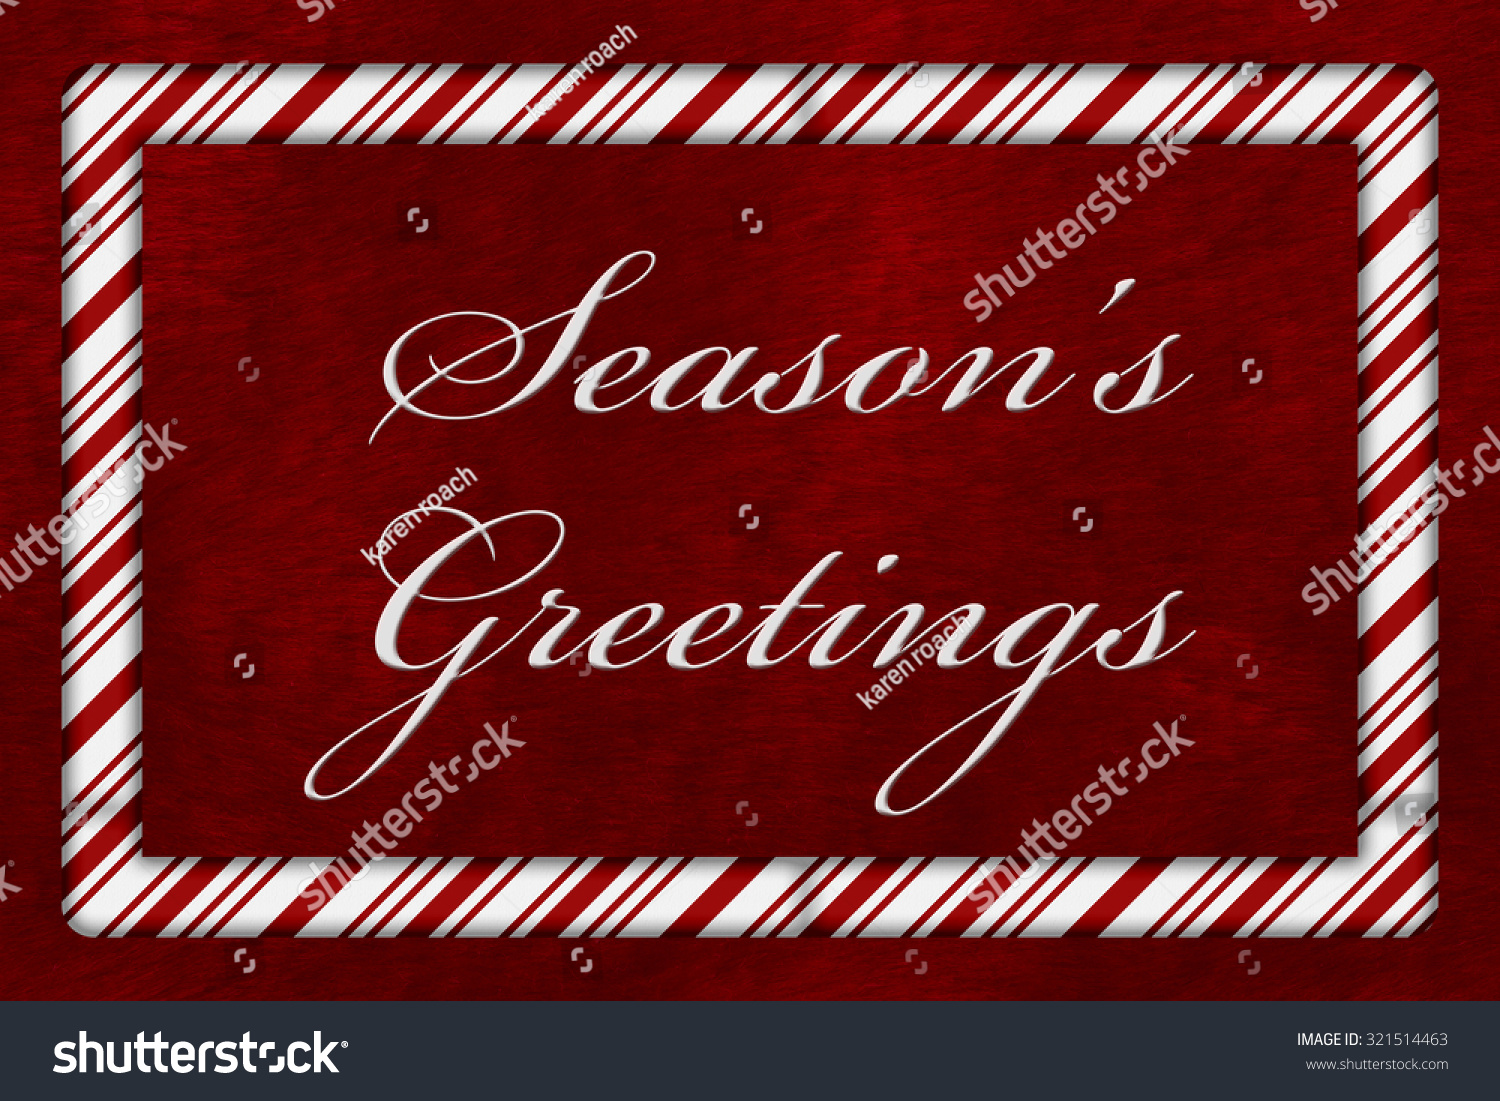 Seasons greetings message candy cane border stock illustration a seasons greetings message a candy cane border with the words seasons greetings over red m4hsunfo